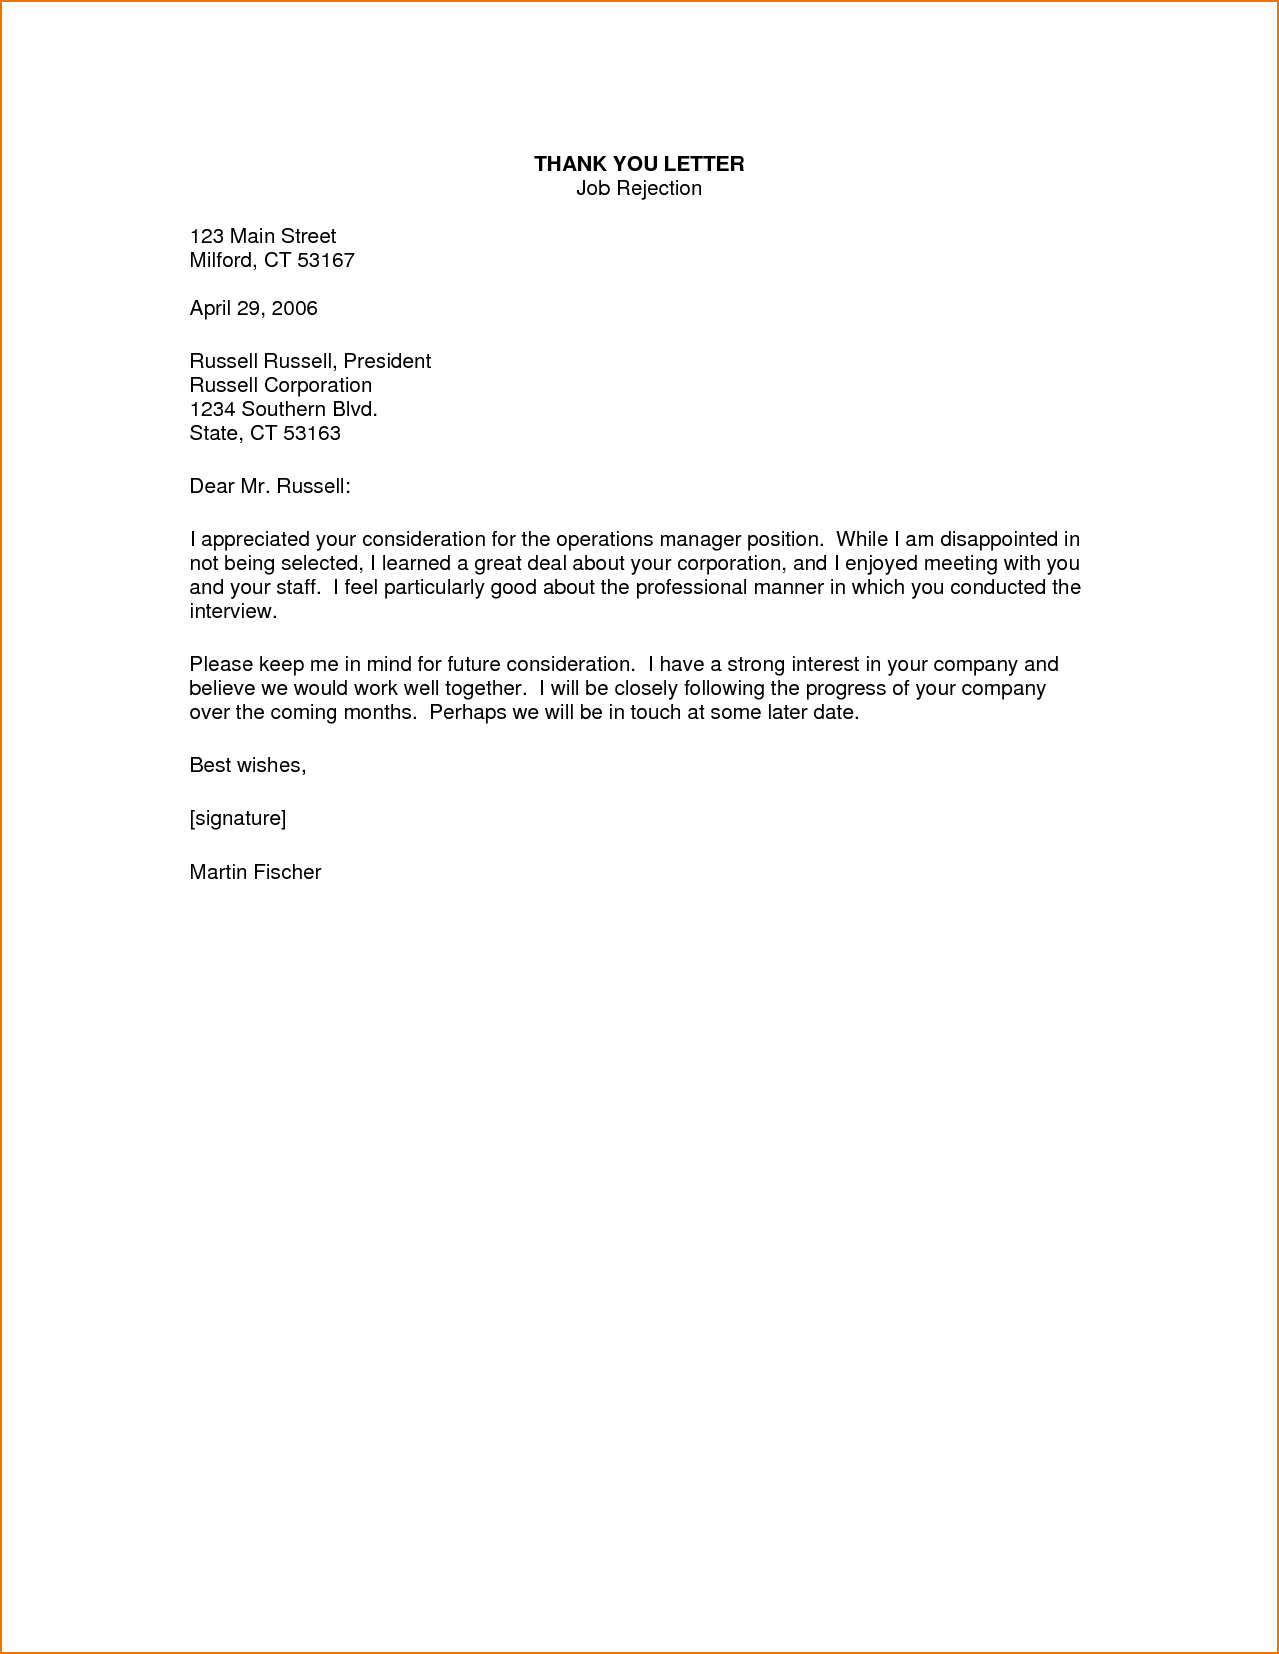 You Letter For Job Offer Rejection Letters Thank After Email Cover